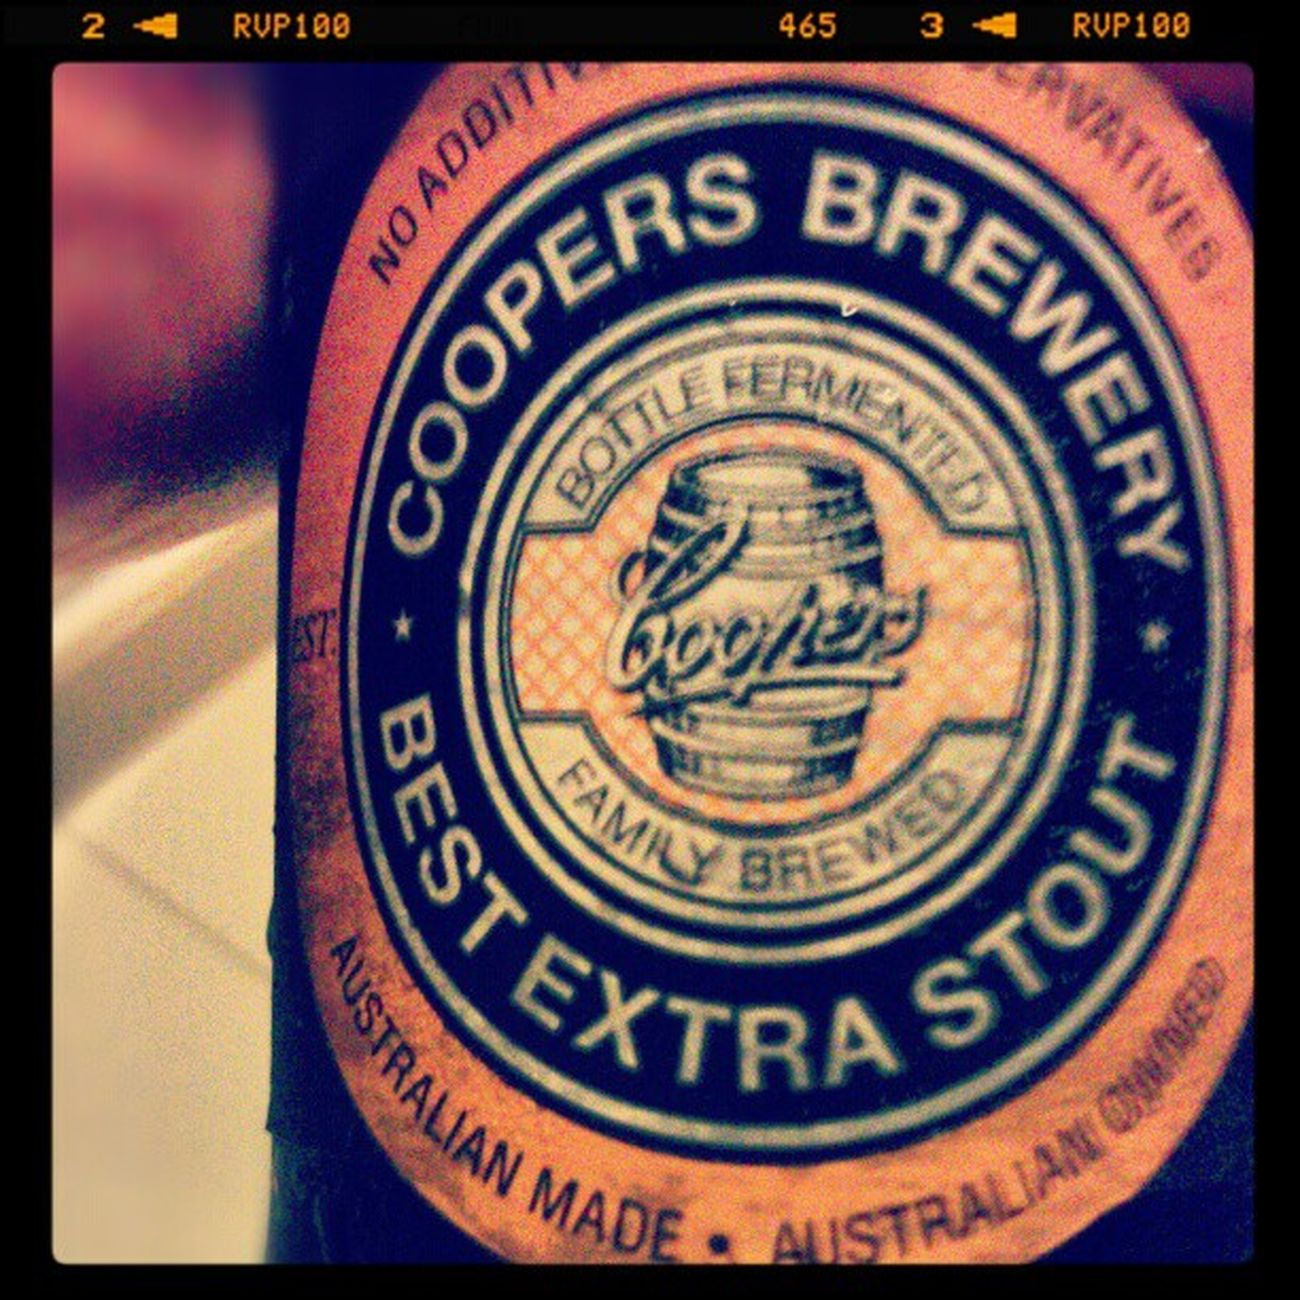 Крутое!!! Beer Coopersbrewery Australian Stout